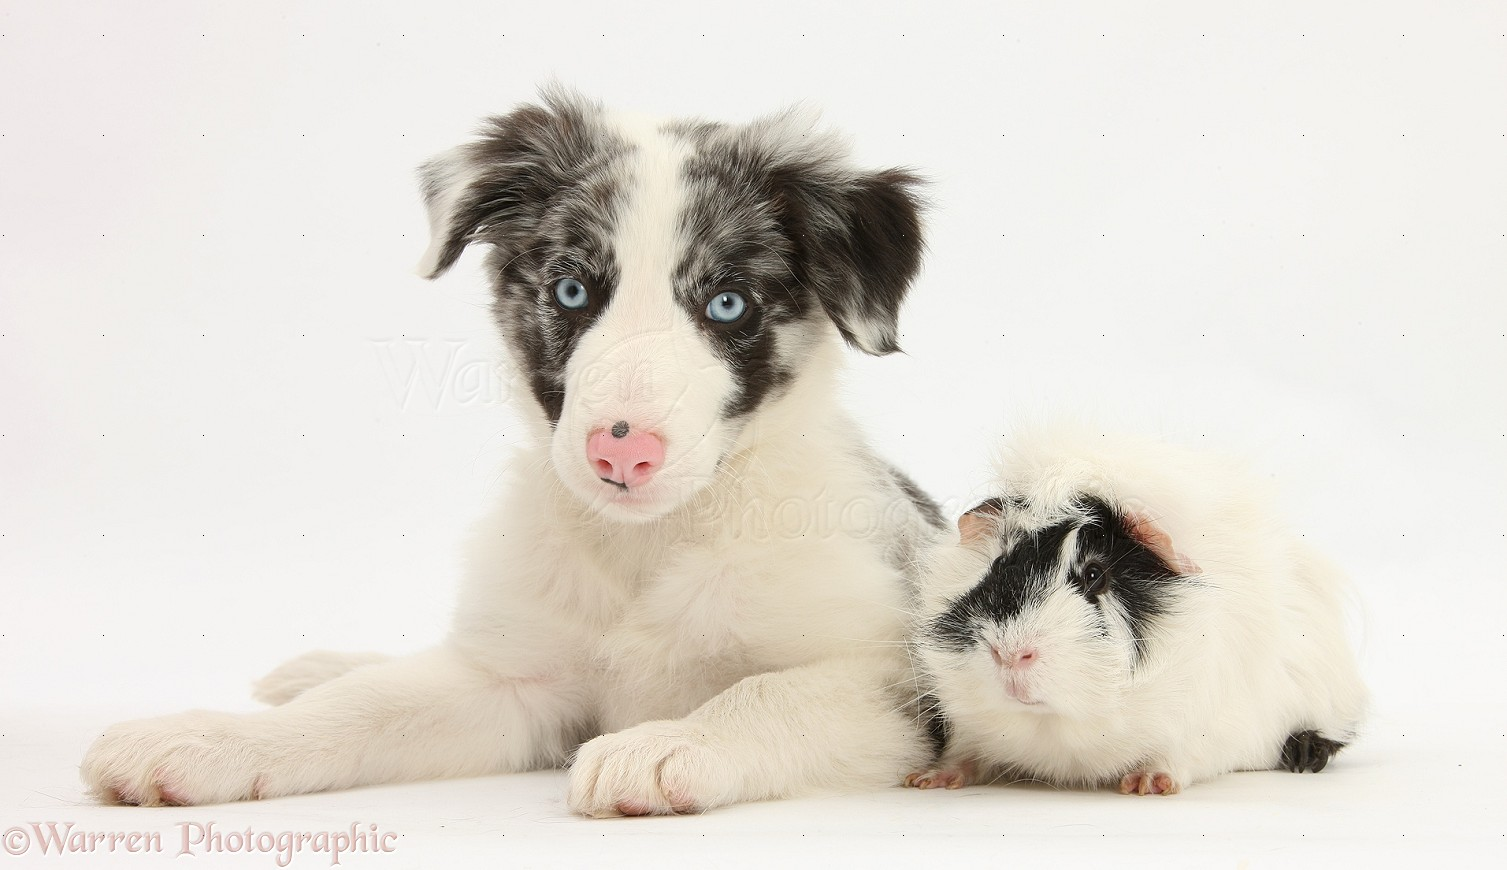 Pin images blue merle border collie dekreu reu wallpaper on pinterest -  27 Pin Blue Merle Border Collie Puppy On Pinterest